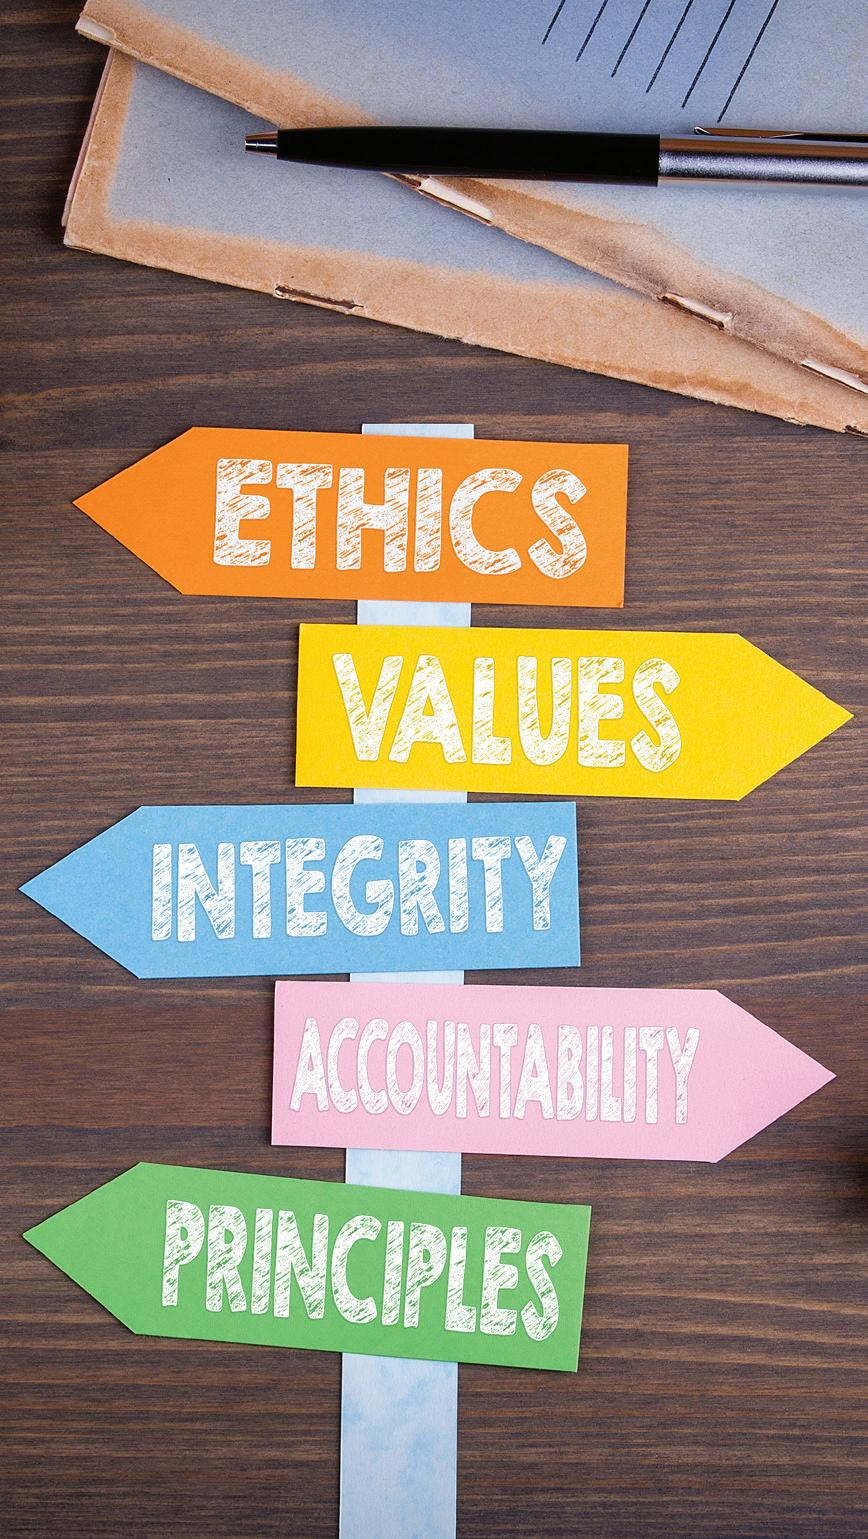 Page 50 of Ethical Accreditation